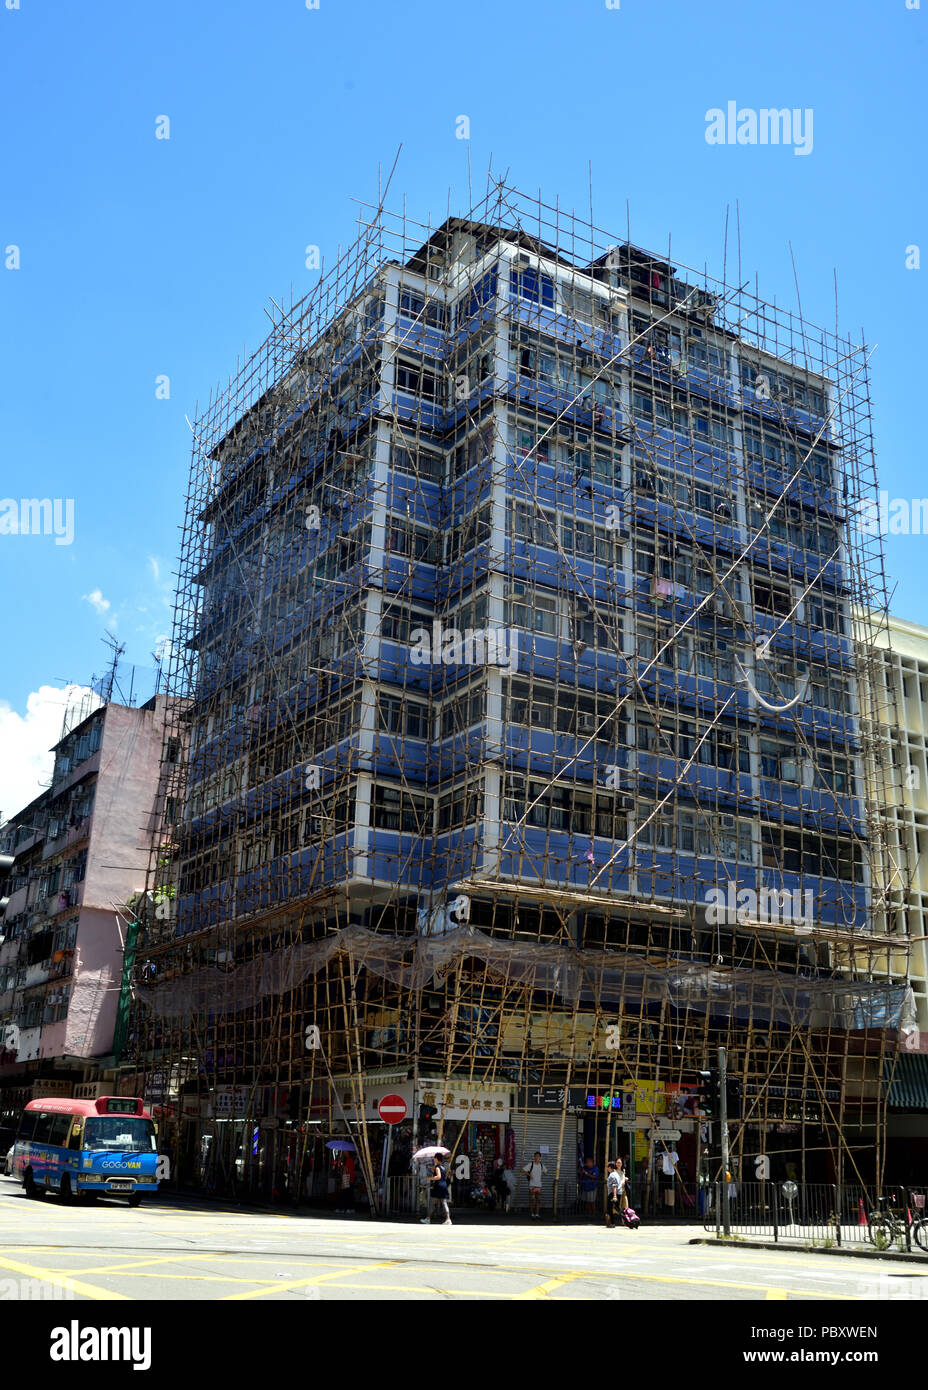 Building covered by bamboo scaffolding - Stock Image